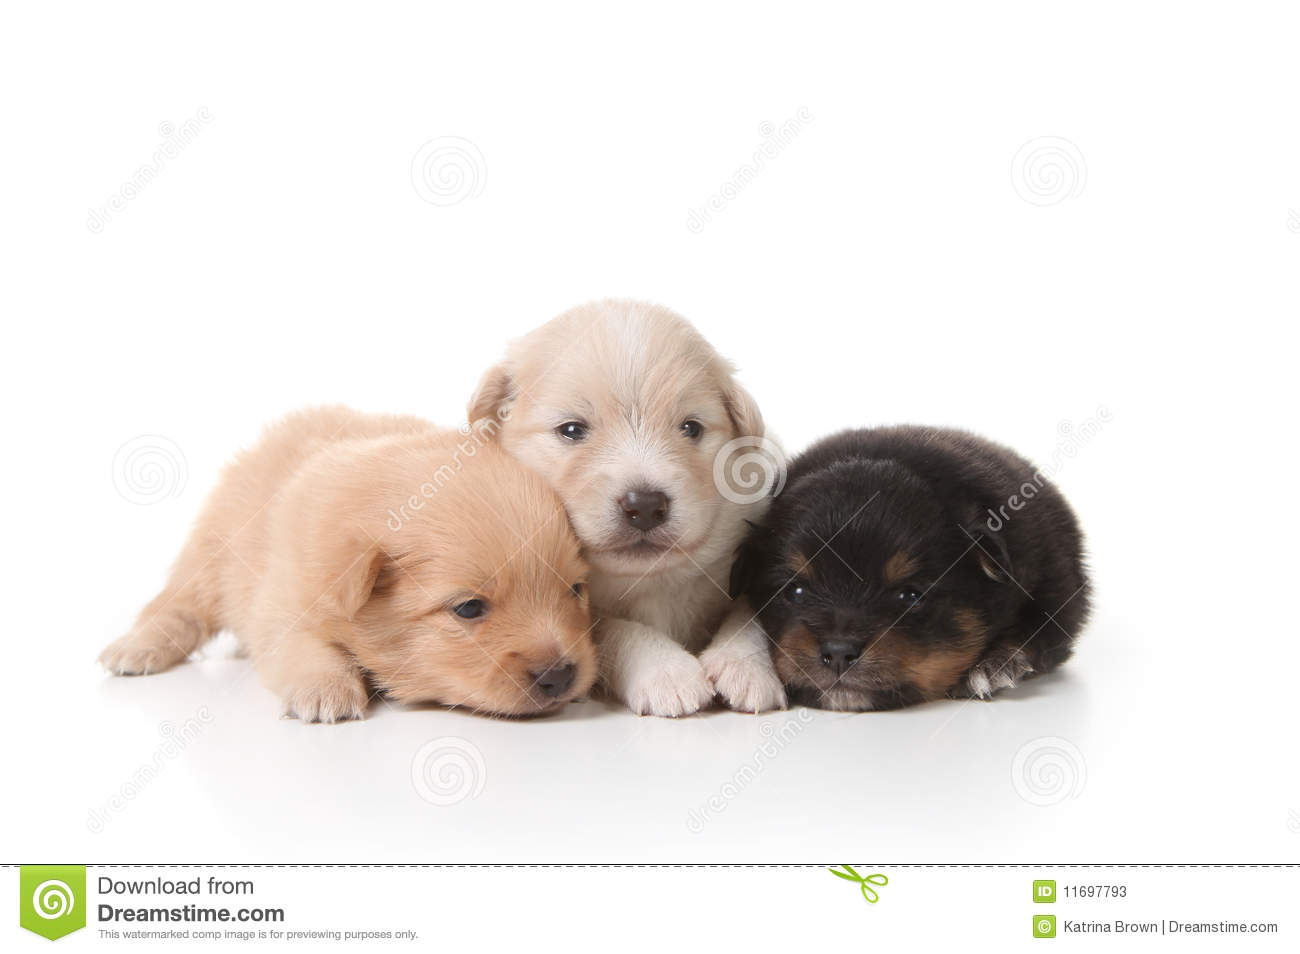 Tired Sweet And Cuddly Newborn Puppies Stock Photos - Image: 11697793